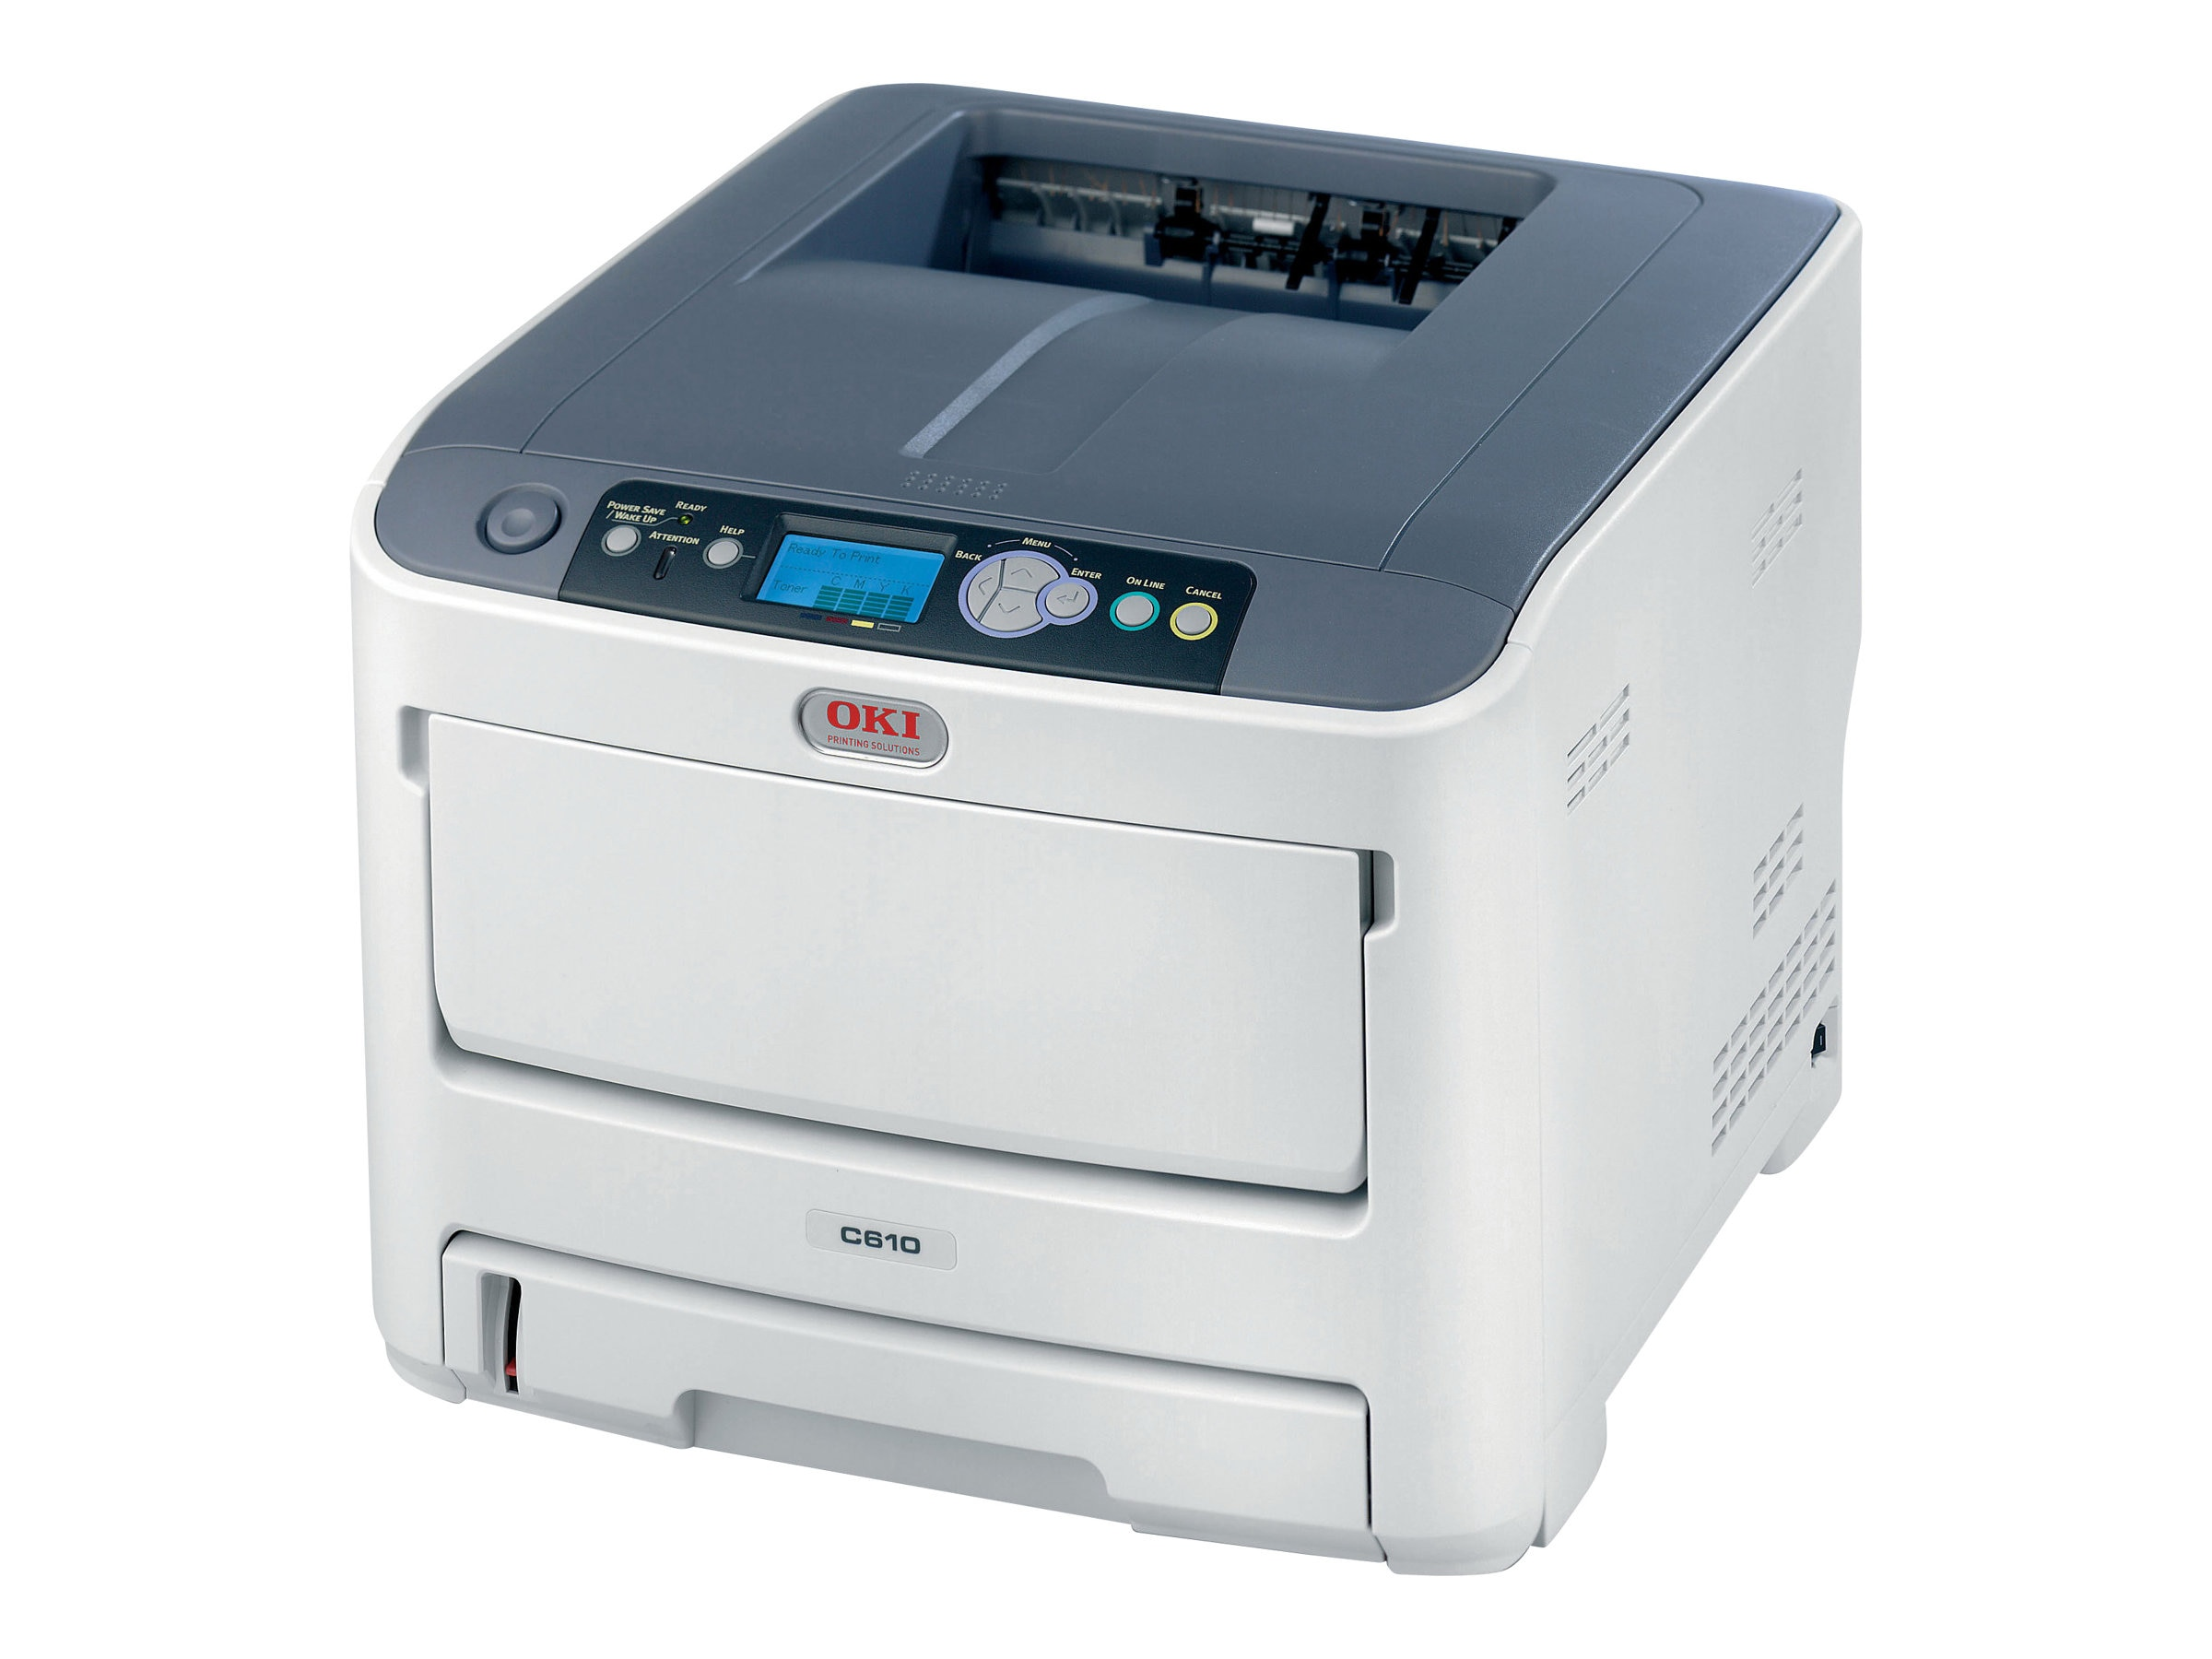 Oki C610n Digital Color Printer (Multilingual), 62446701